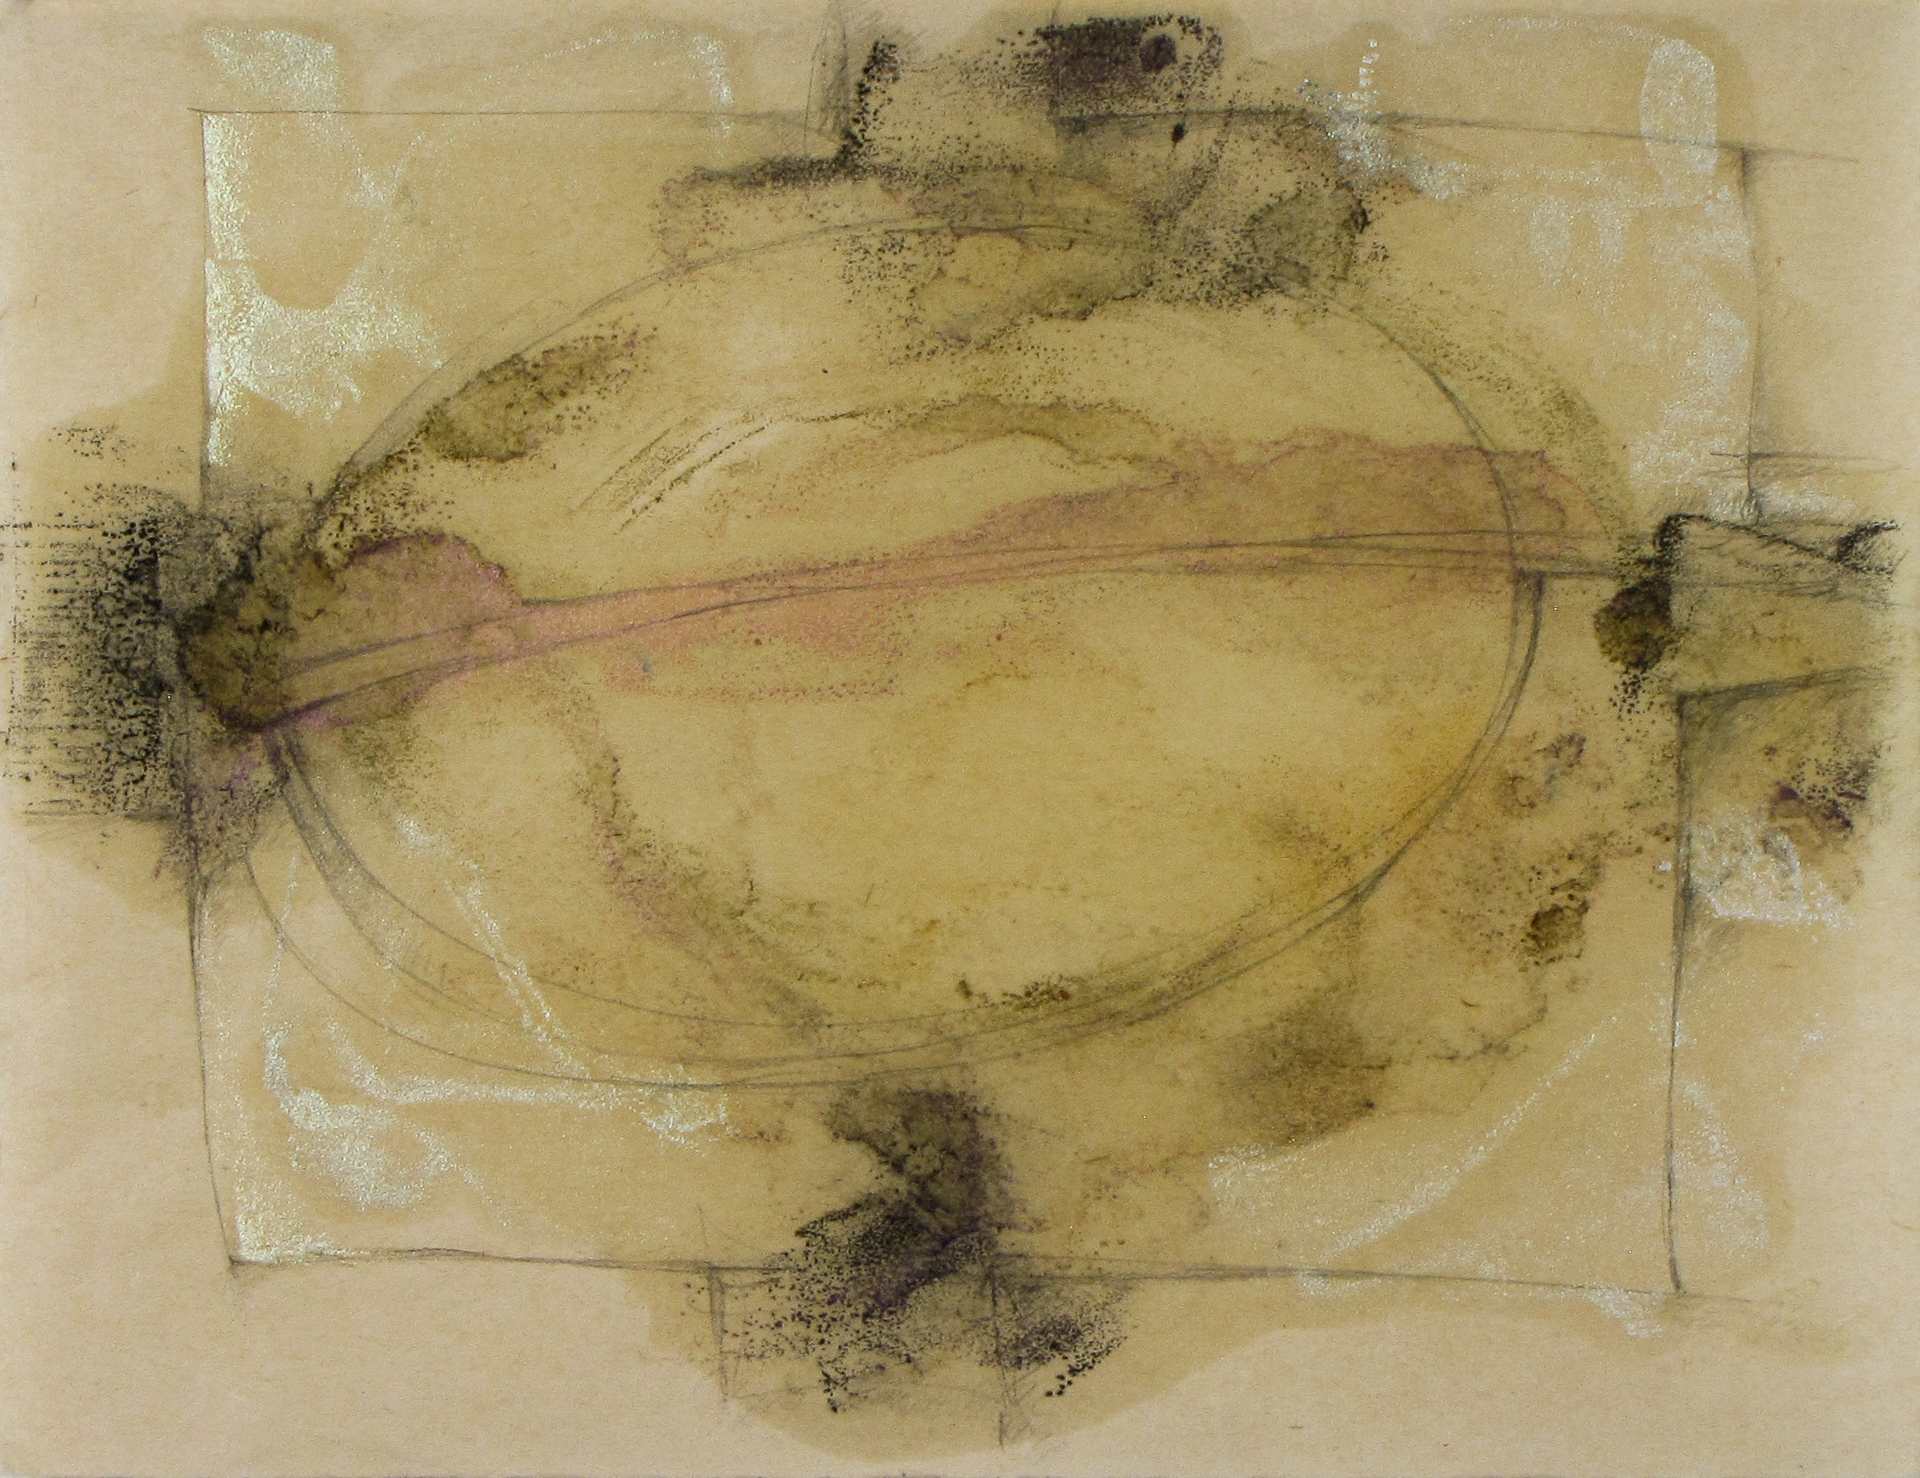 Four Directions, an encaustic monotype